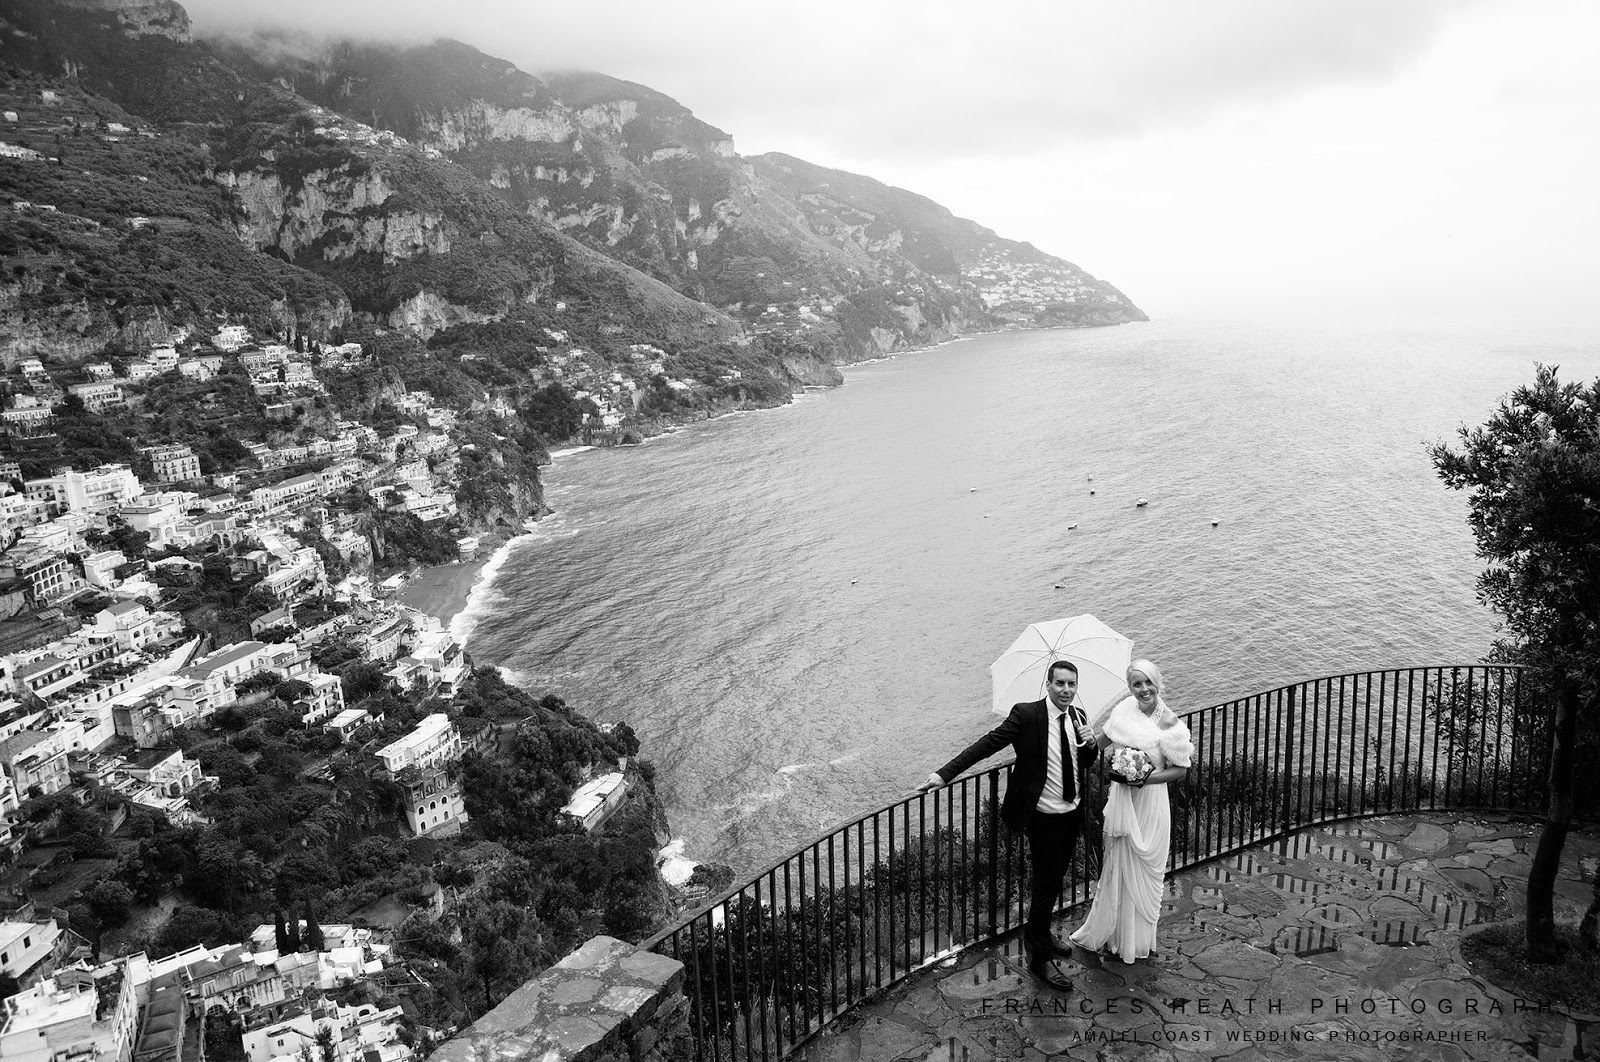 Wedding with a view overlooking Positano